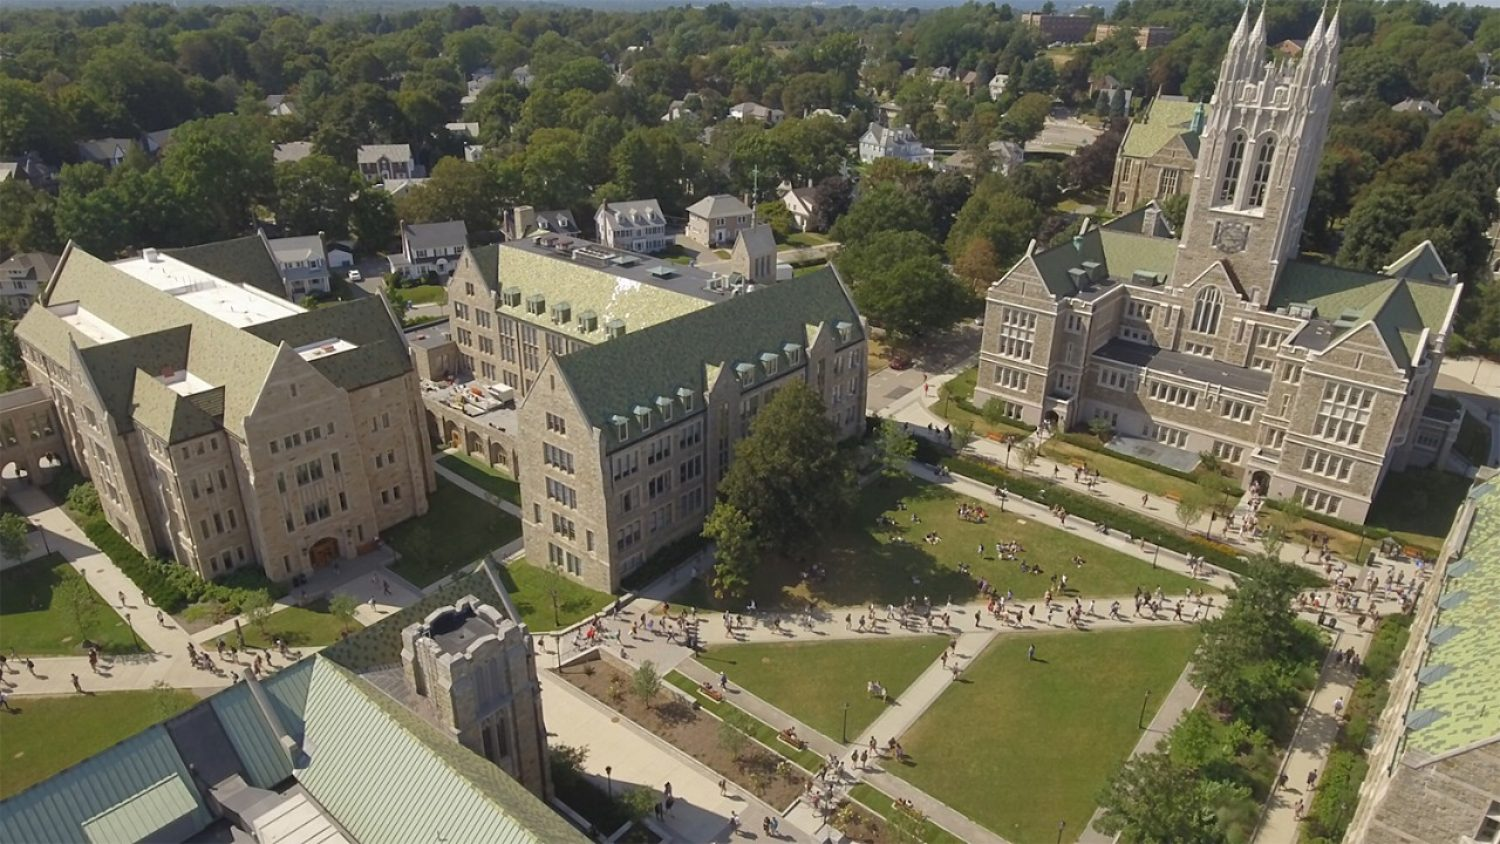 Aerial view of the Boston College campus